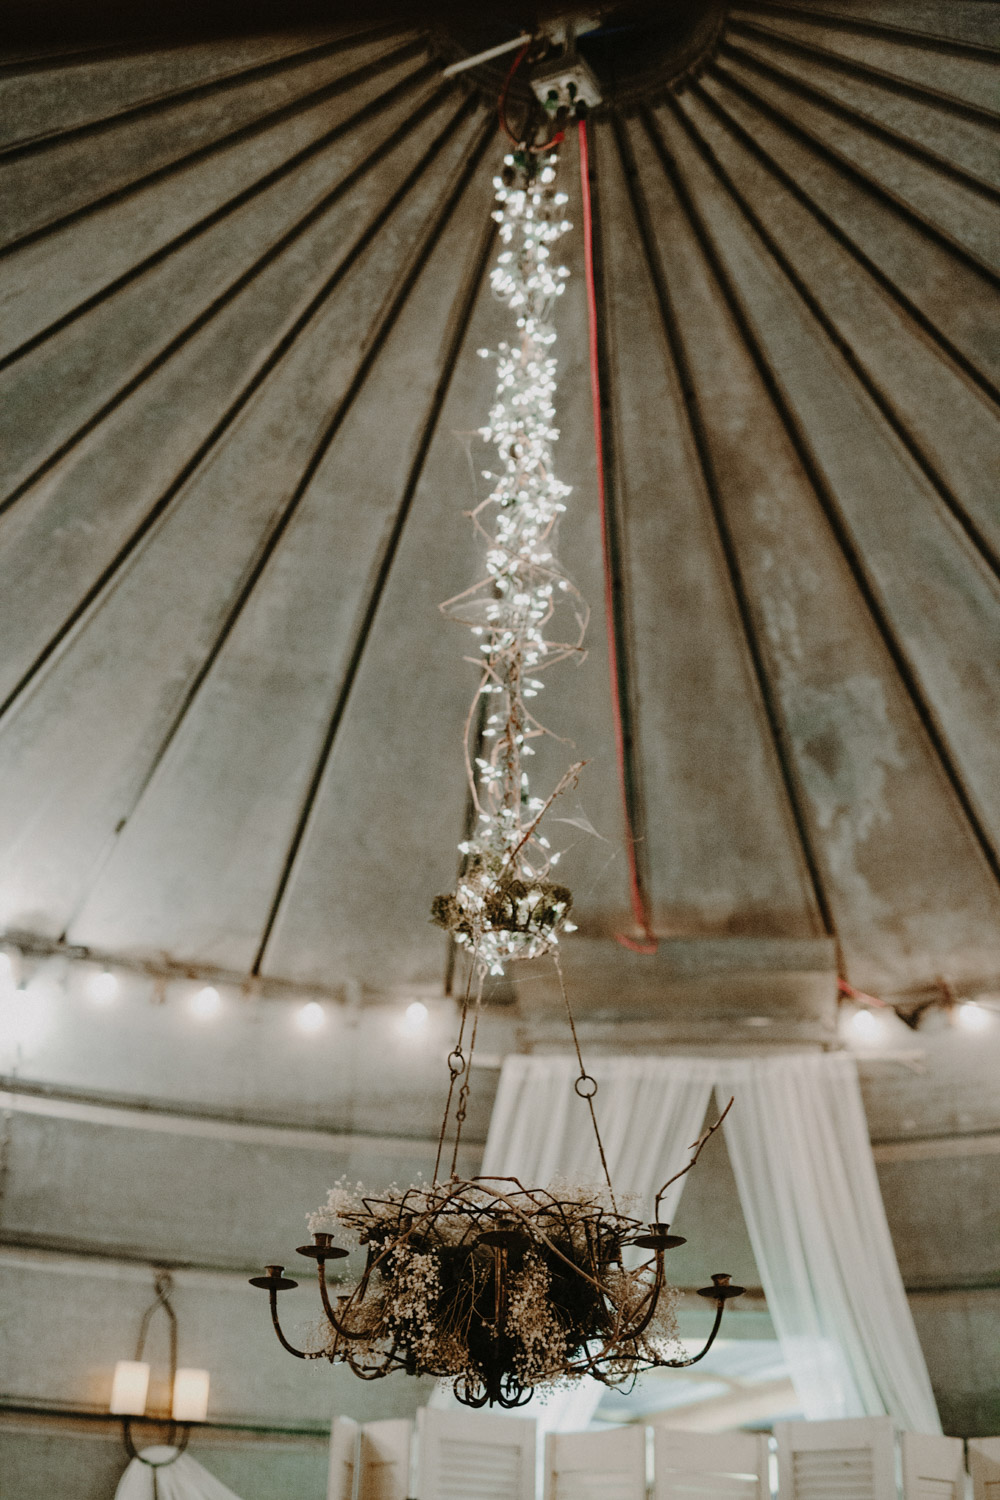 Greg-Petersen-San-Francisco-Wedding-Photographer-1-89.jpg